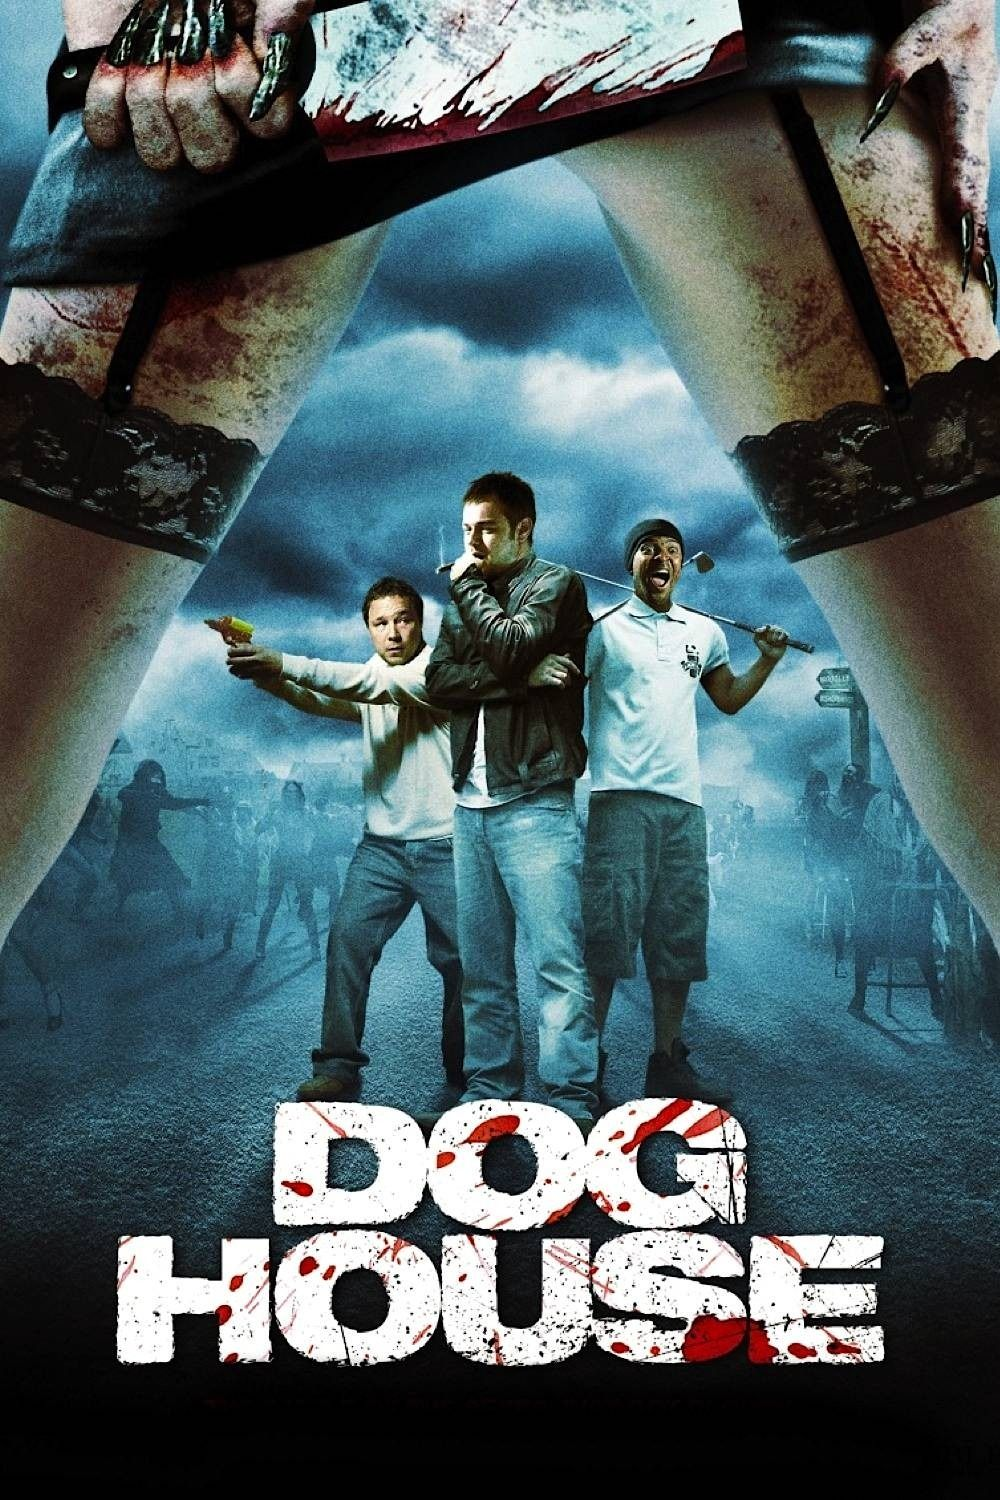 click image to watch Doghouse (2009) Full films, Movies